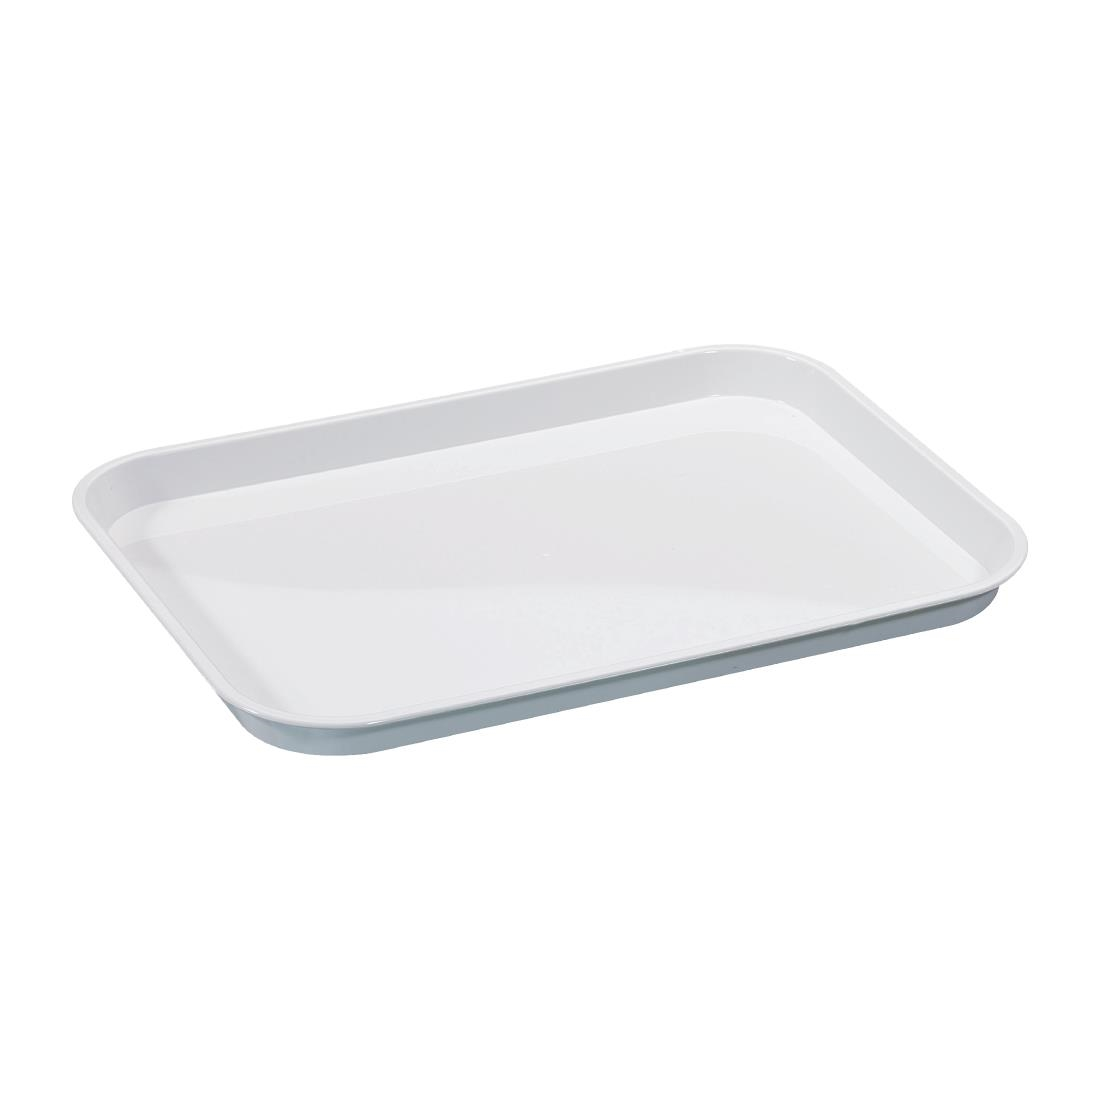 High Impact ABS Food Tray 14in